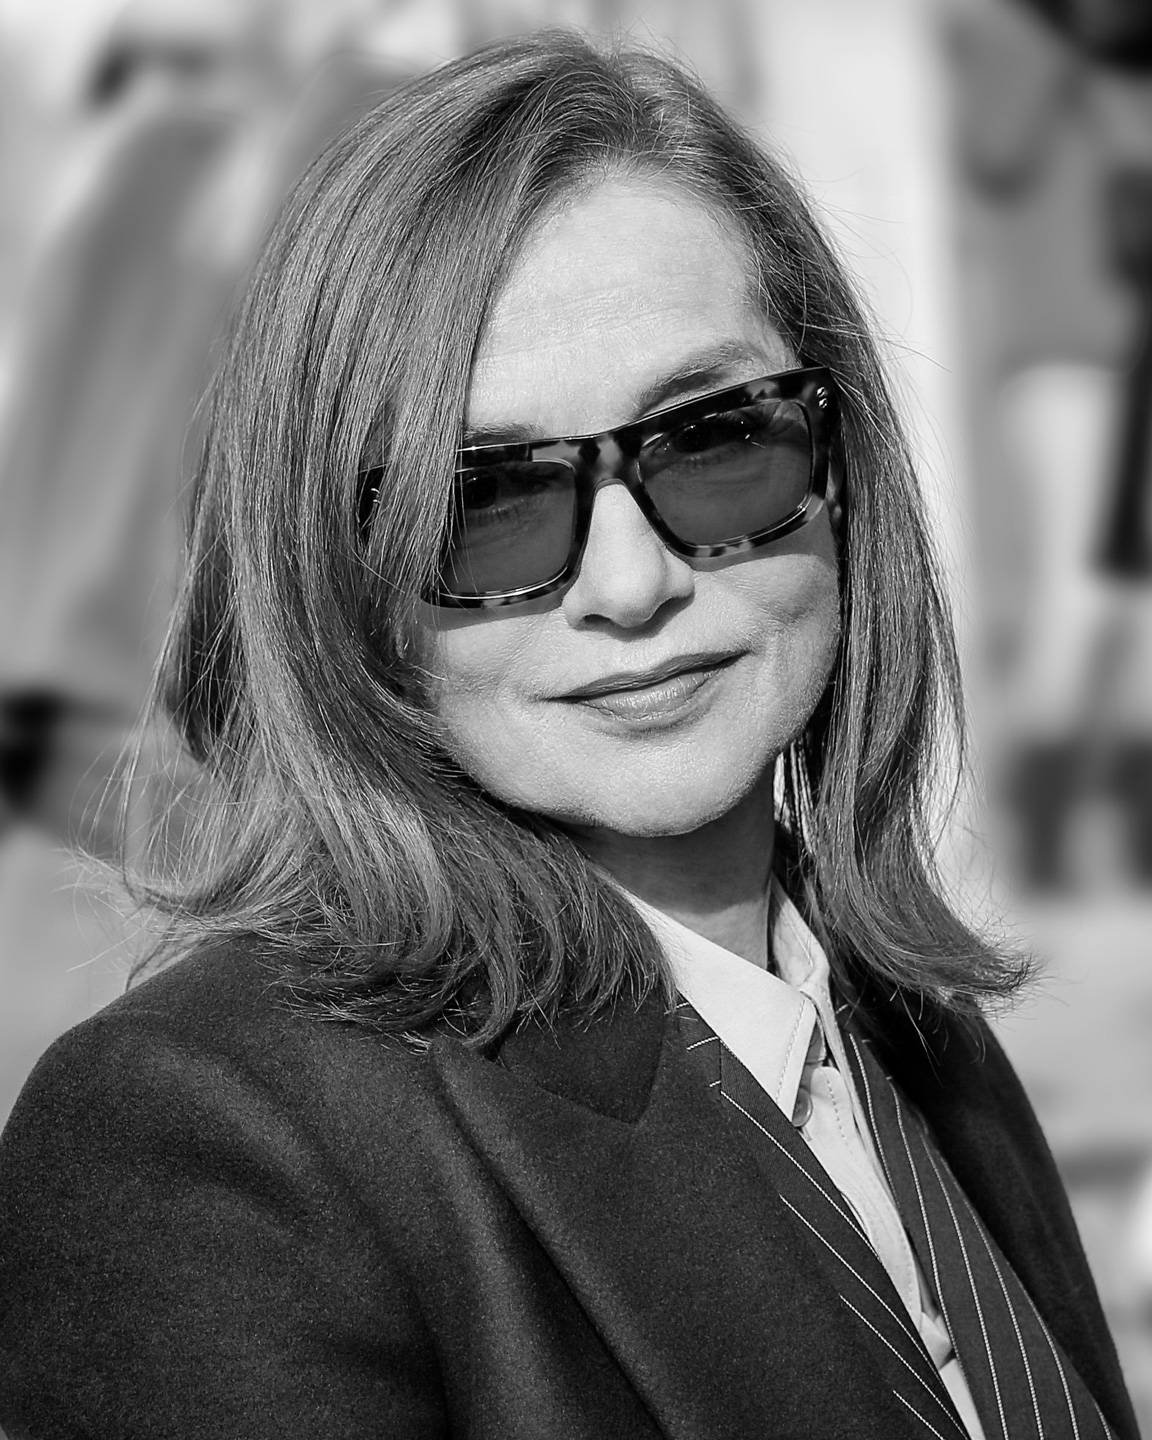 French Photographer Portrait Photography Isabelle Huppert / Stella McCartney